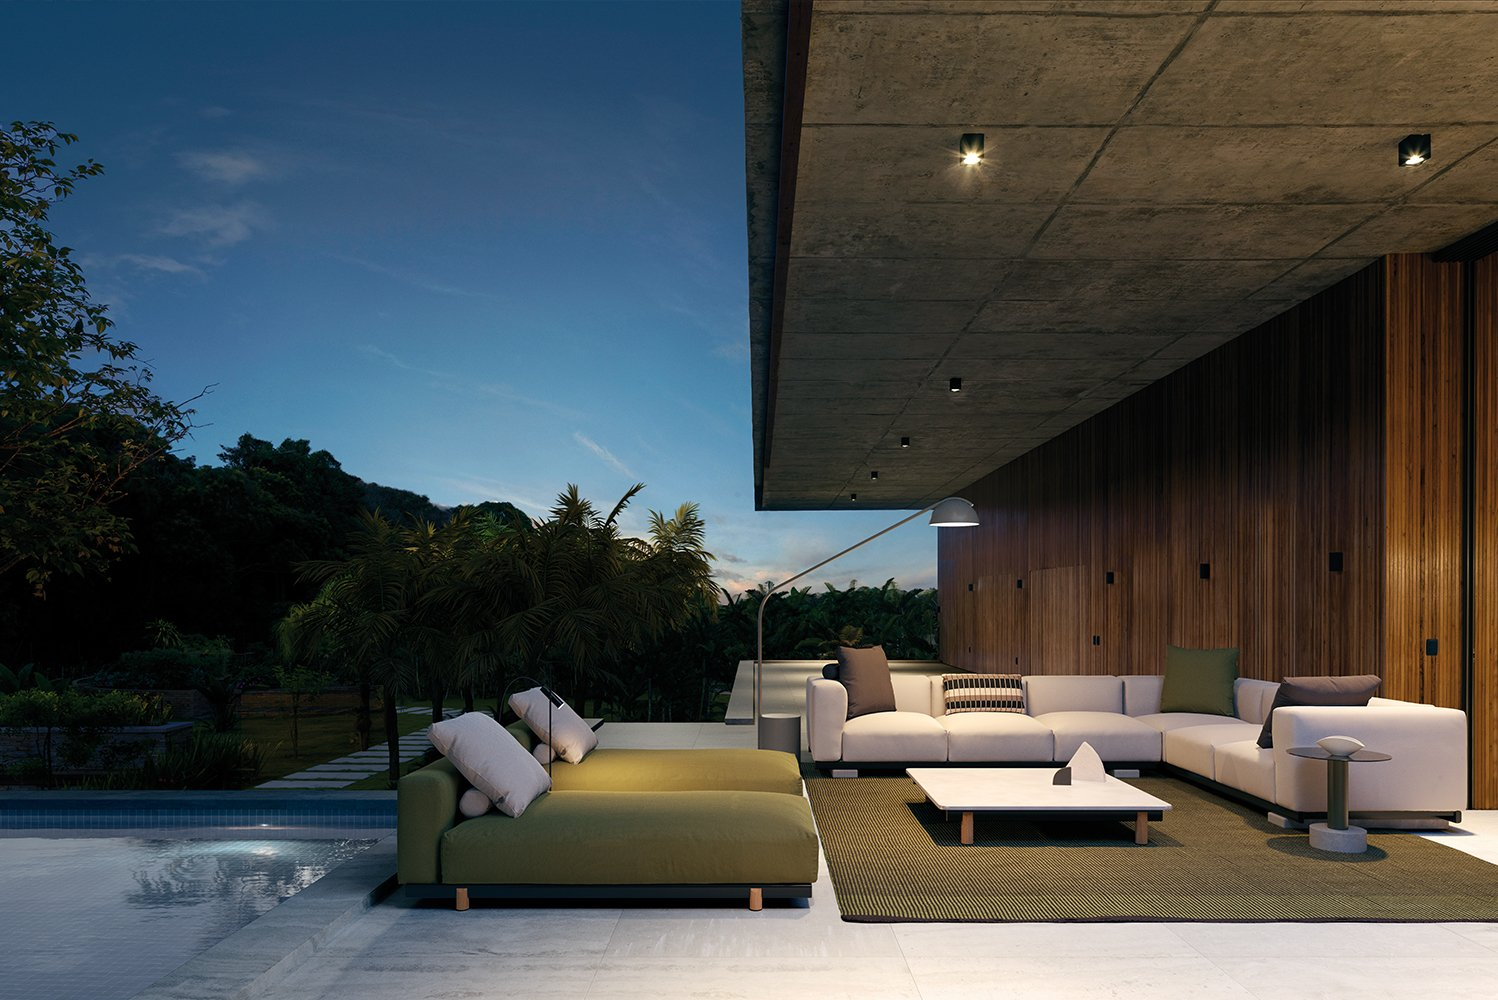 Molo is manufactured in aluminum, teak, concrete and terrain fabrics.